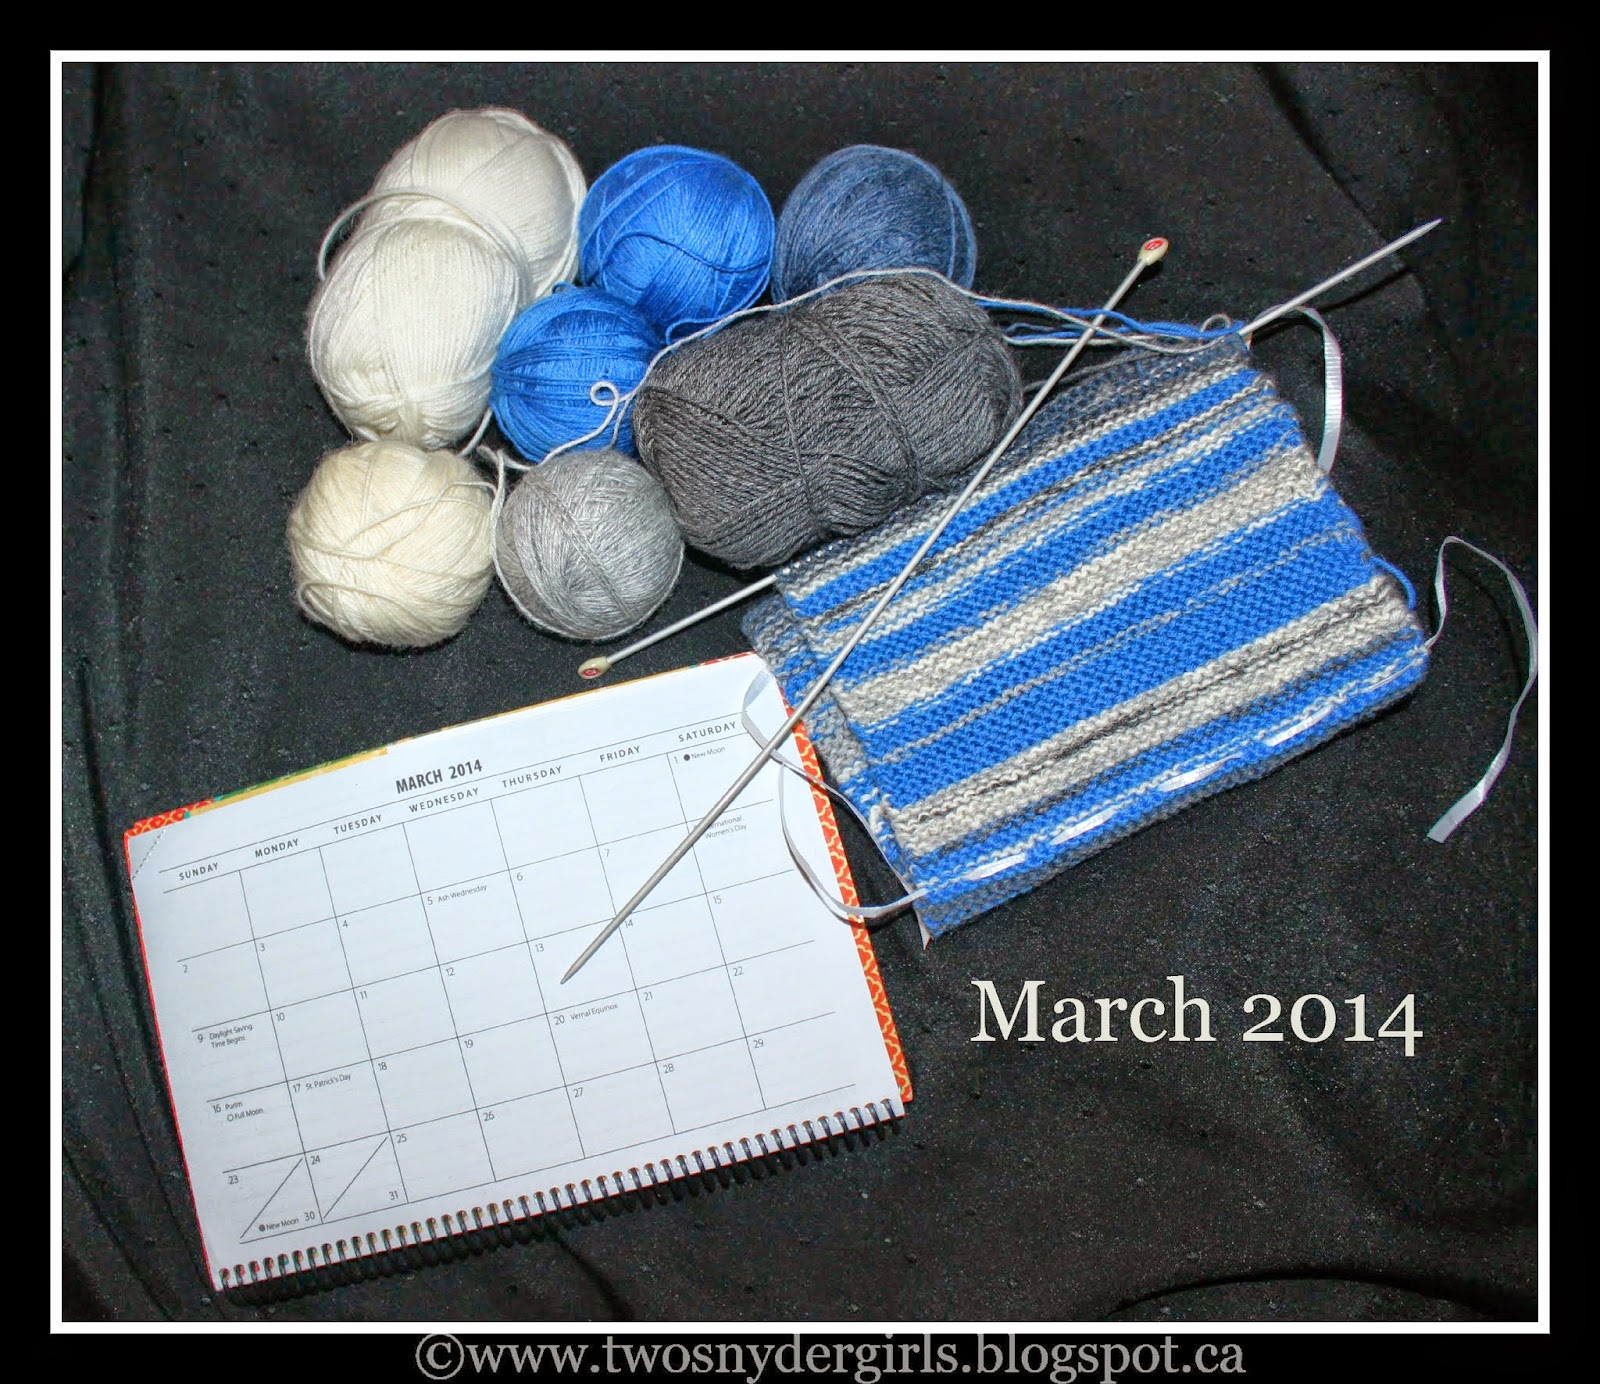 March 2014 sky reflected through knitting